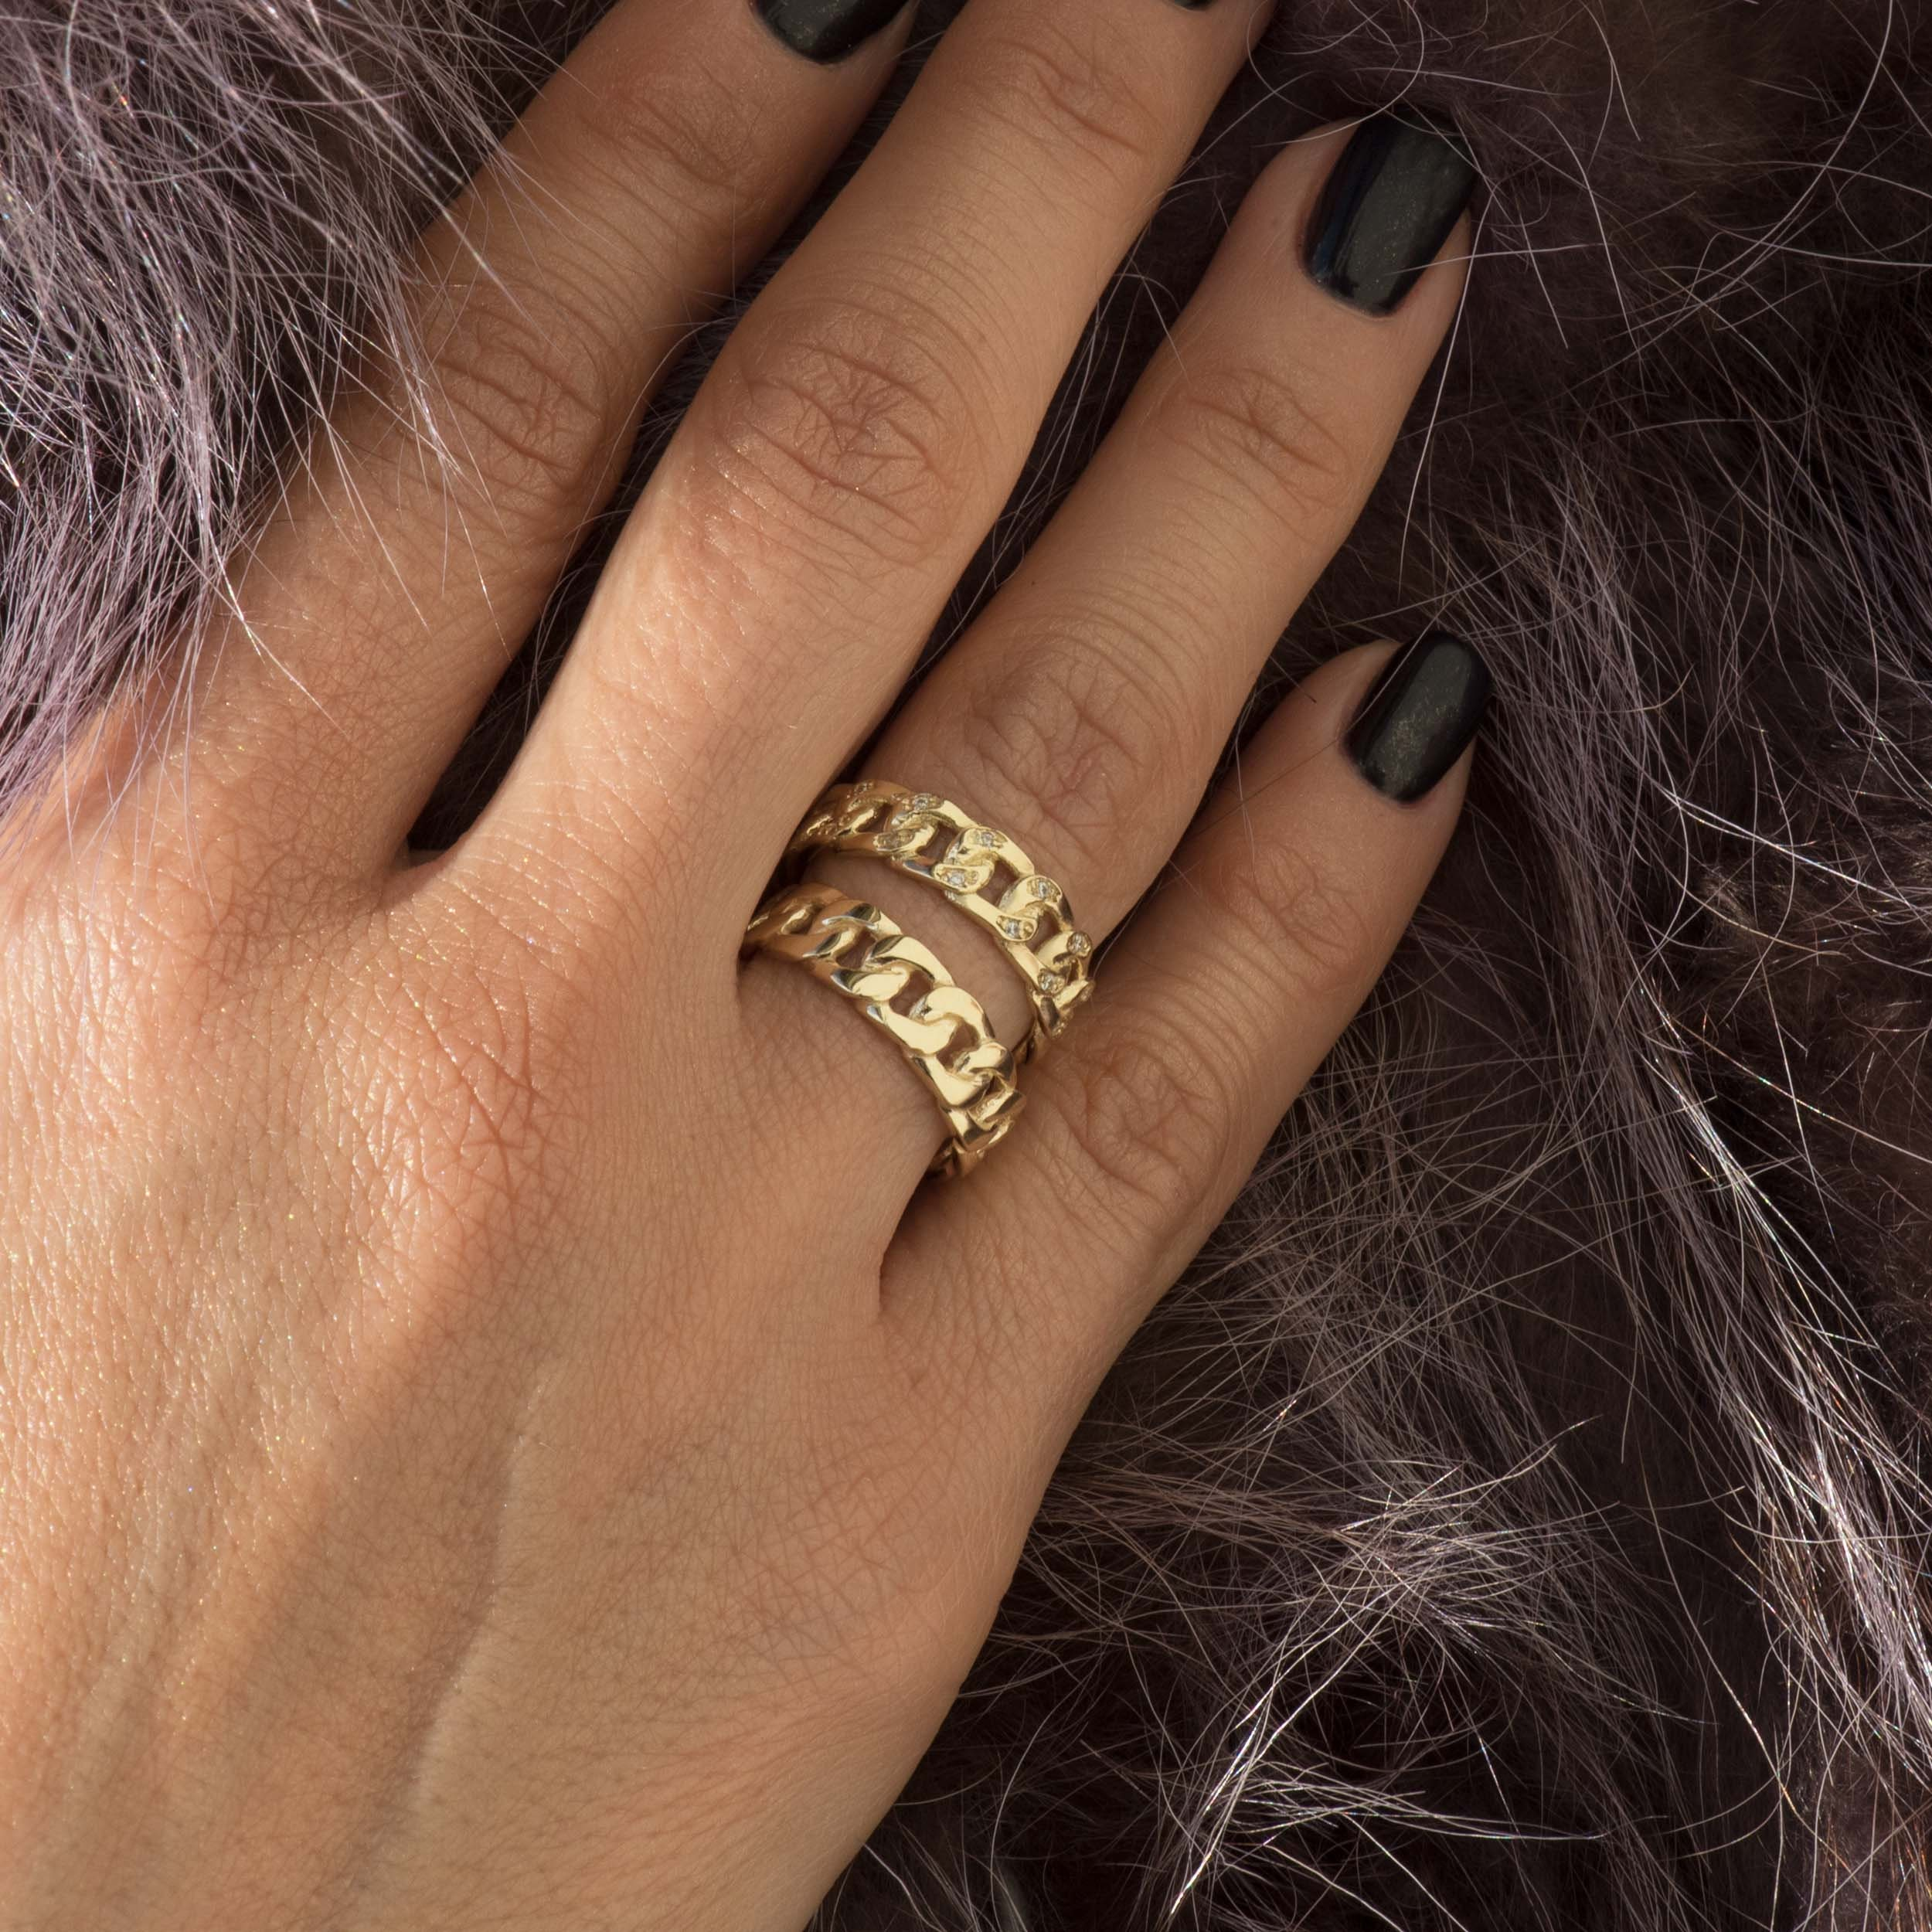 Diamond Ring* Solid 14kGold Ring Ring Chain Ring Gold Ring Chain Eternity Chain Ring Chunky Chain Ring Curb Chain Ring